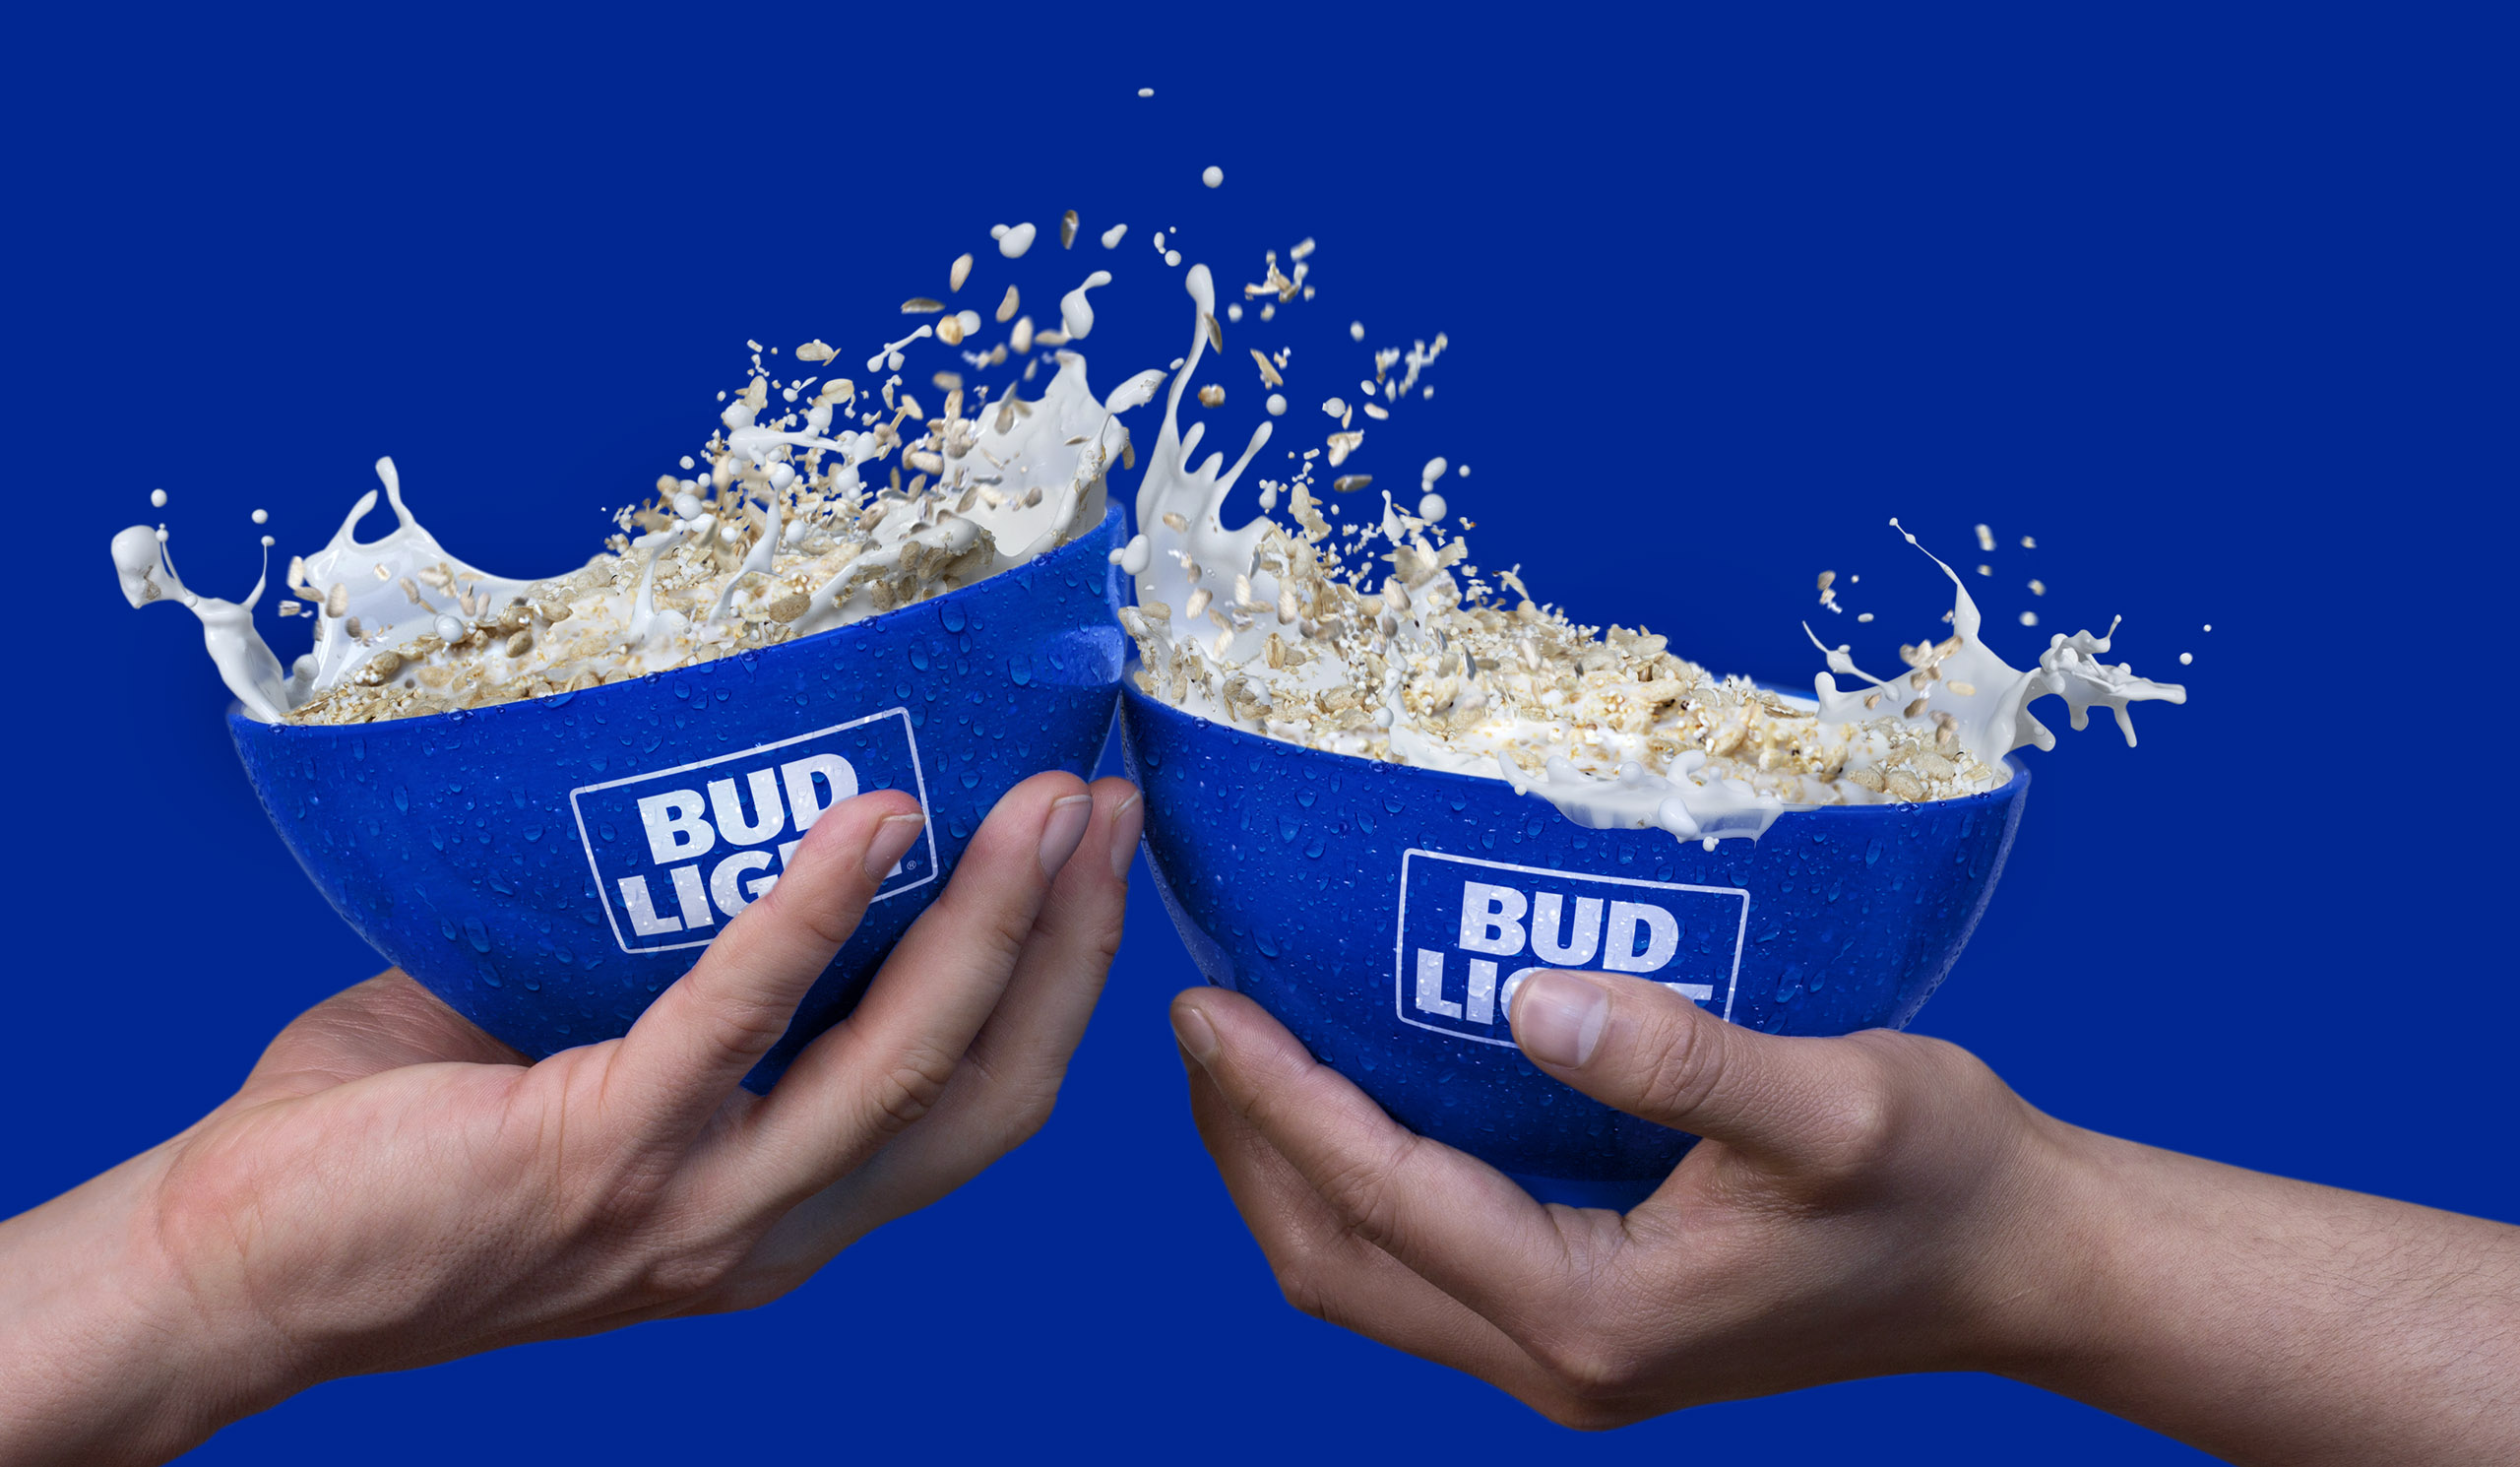 Sopitas-Cereal-de-cerveza-bud-light